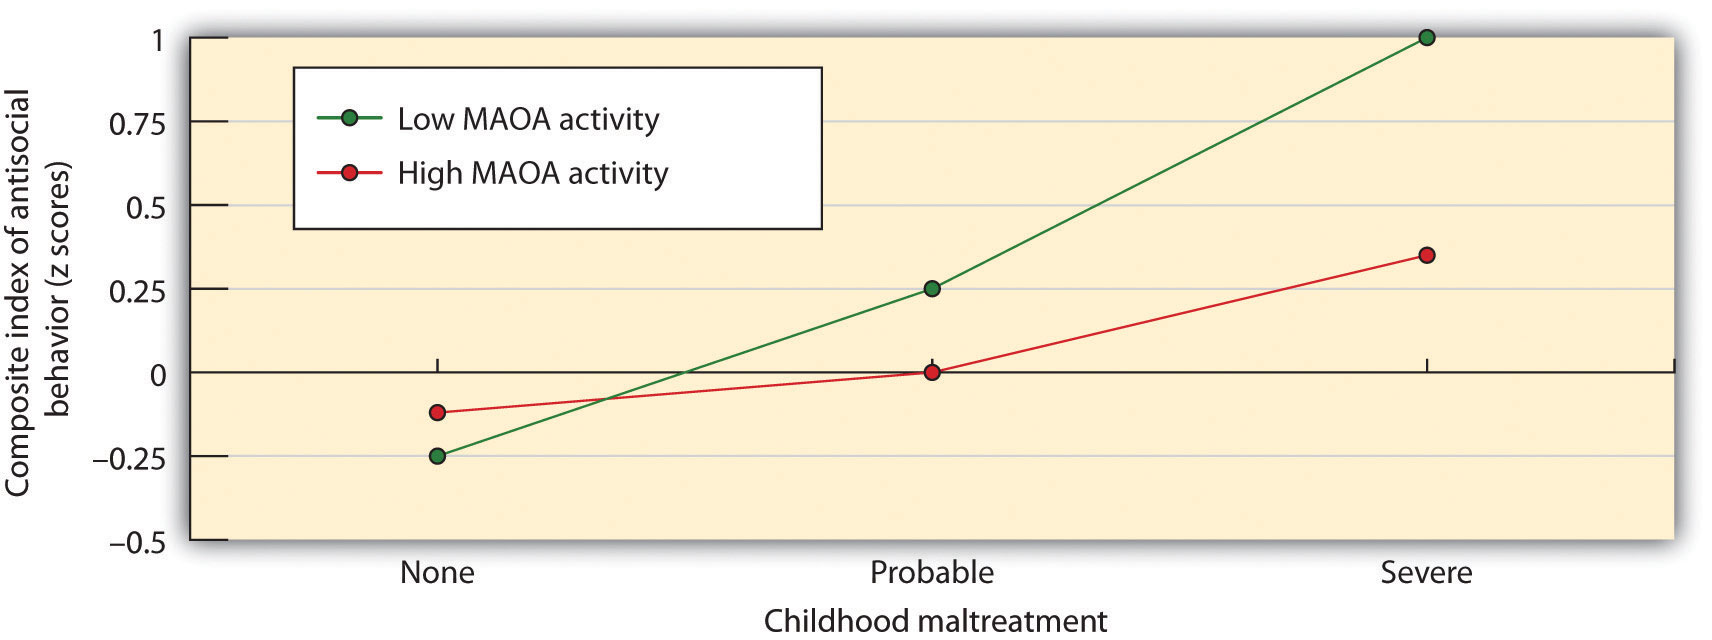 Caspi and his colleagues (2002) found evidence for a person-by-situation interaction regarding the role of genetics and parental treatment in aggression. Antisocial behavior and aggression were greater for children who had been severely maltreated, but this effect was even stronger for children with a gene variation that reduced the production of serotonin.